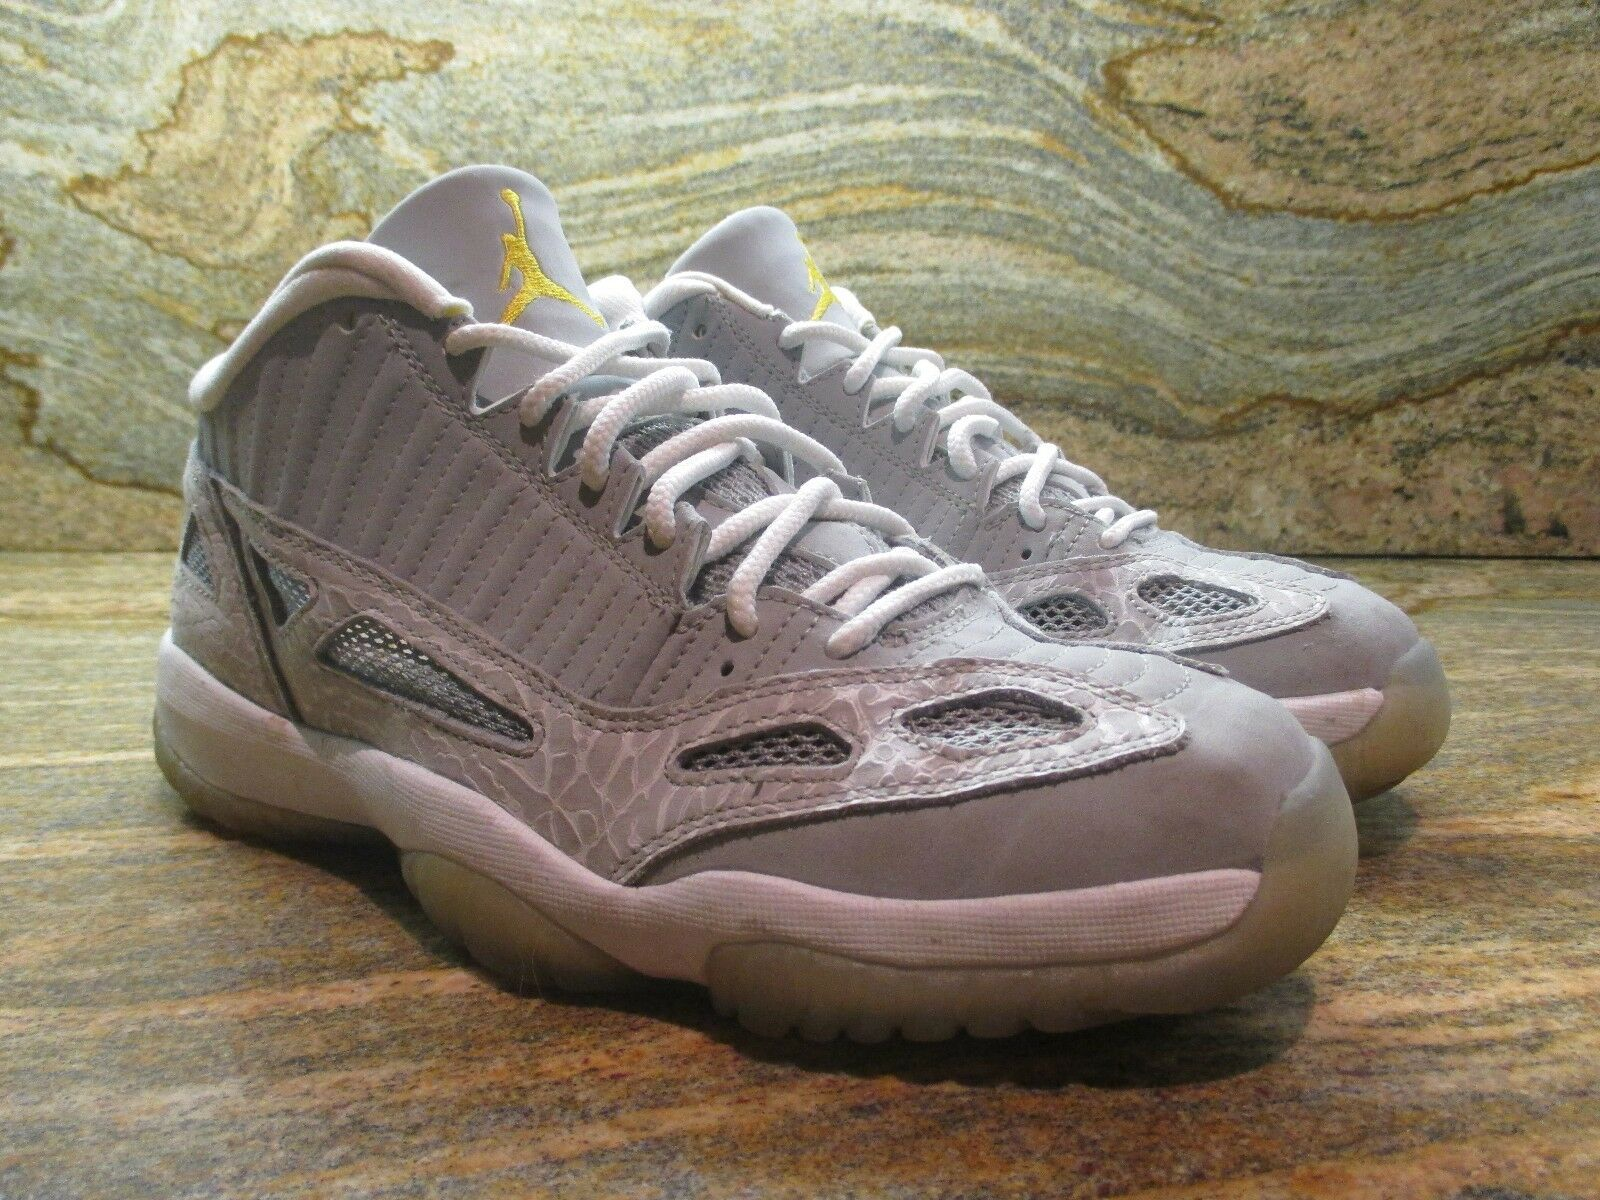 2007 Nike Air Jordan 11 XI Retro Low IE SZ 9 Cool Grey Silver Zest OG 306008-072